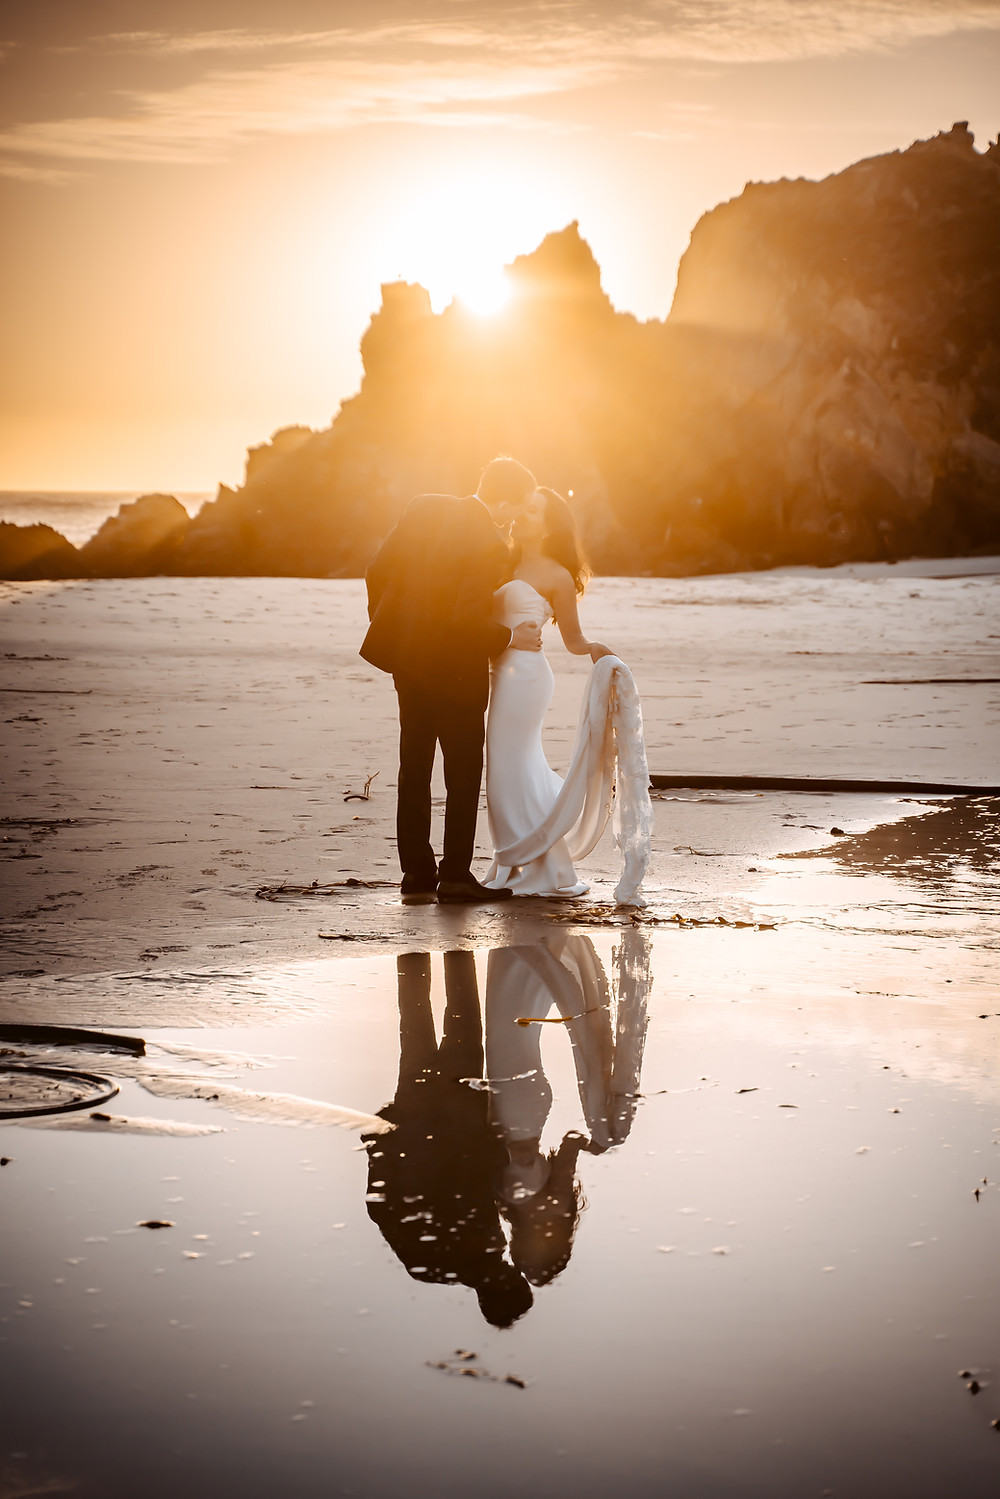 A bride and groom kissing on the beach during sunset in front of a reflection in a pond in Big Sur